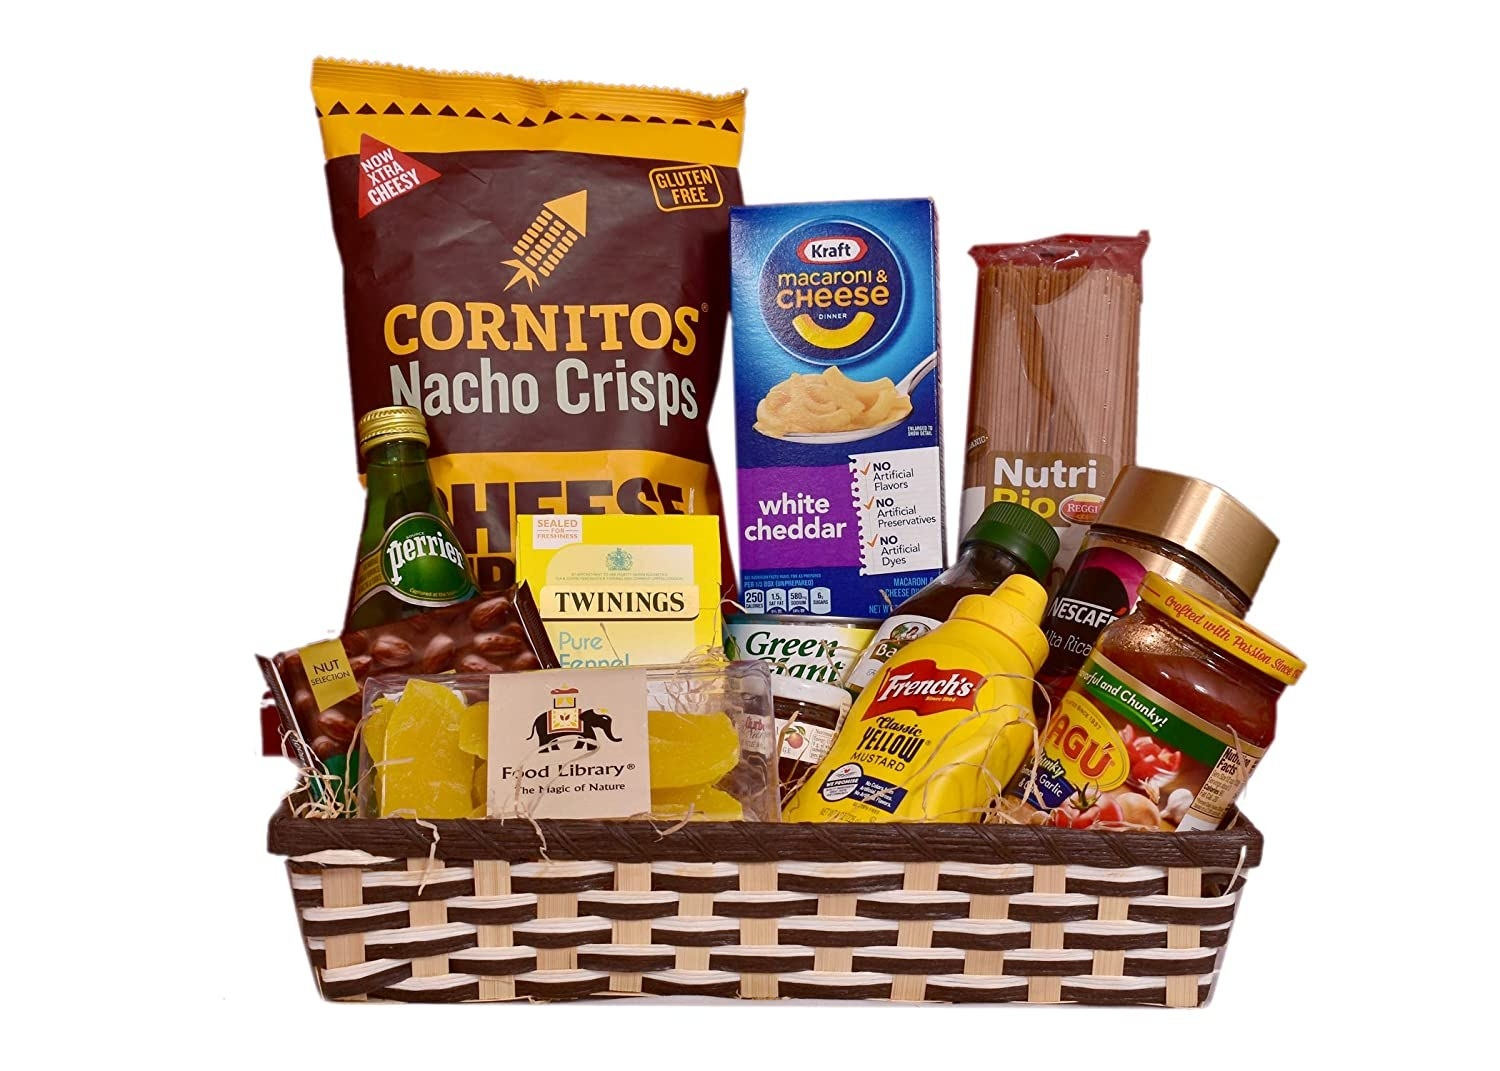 A snack basket filled with nachos, tea, coffee, pasta, sauces.